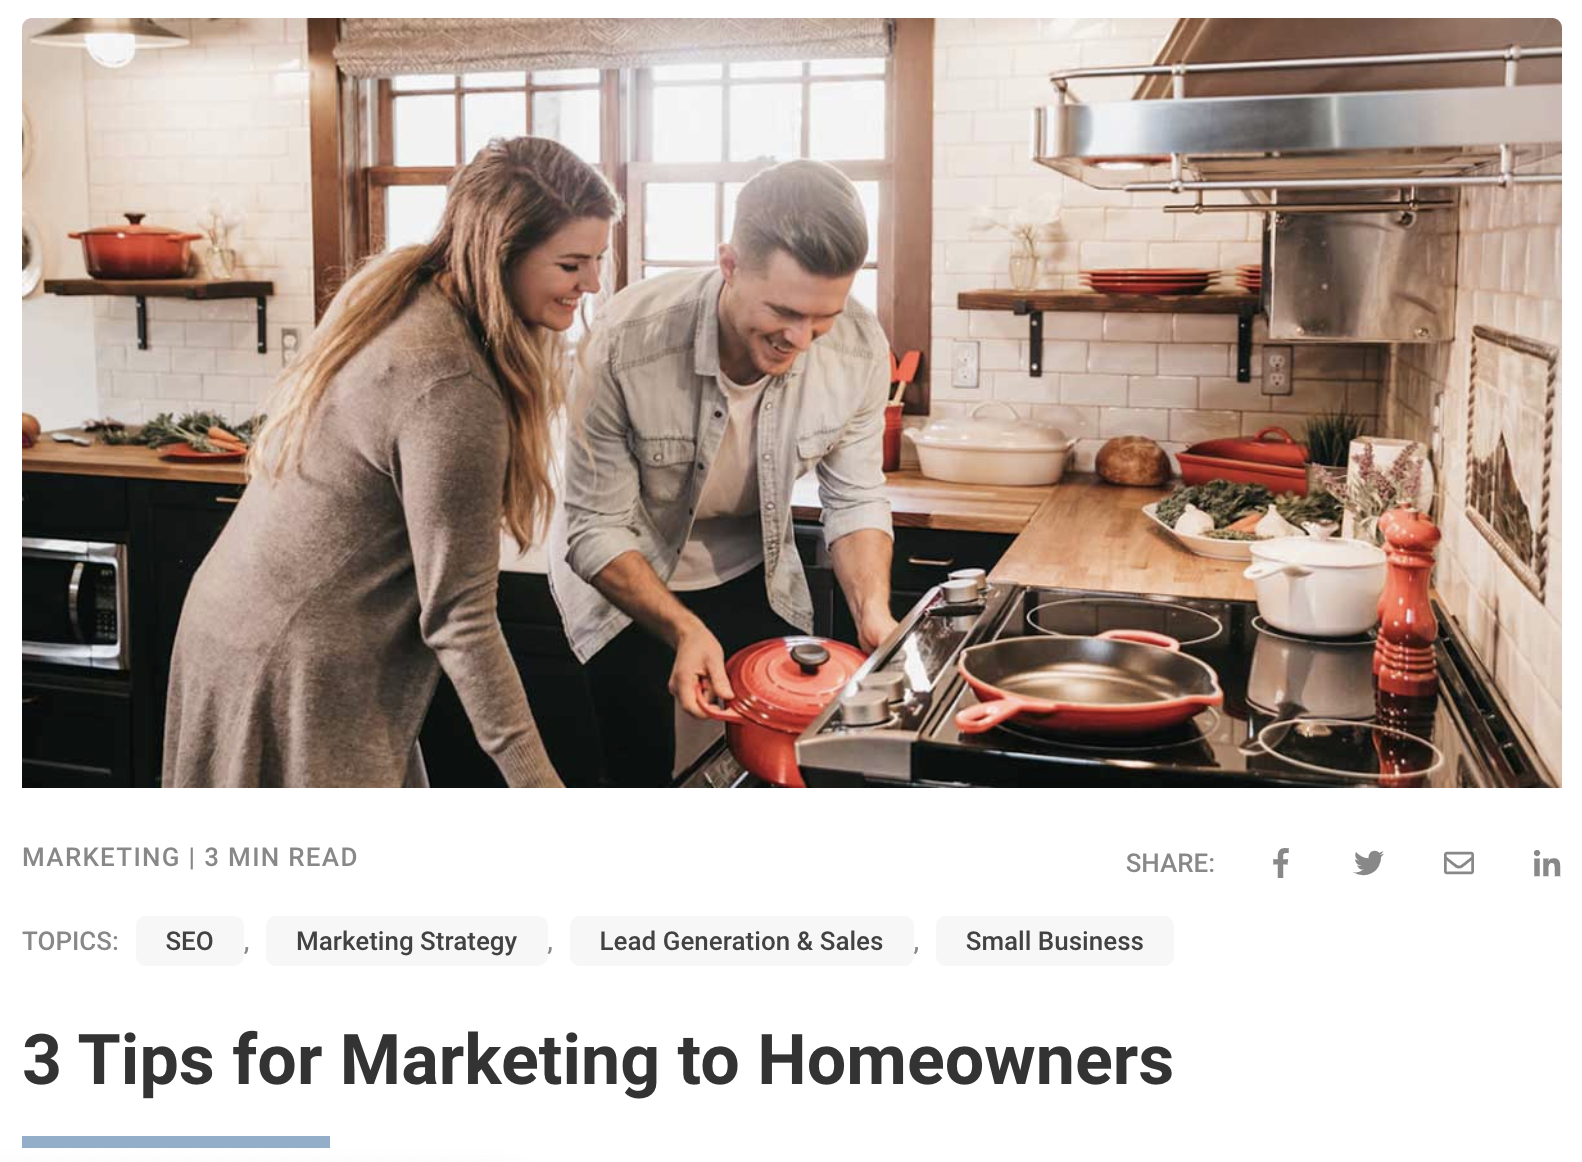 3 Tips for Marketing to Homeowners